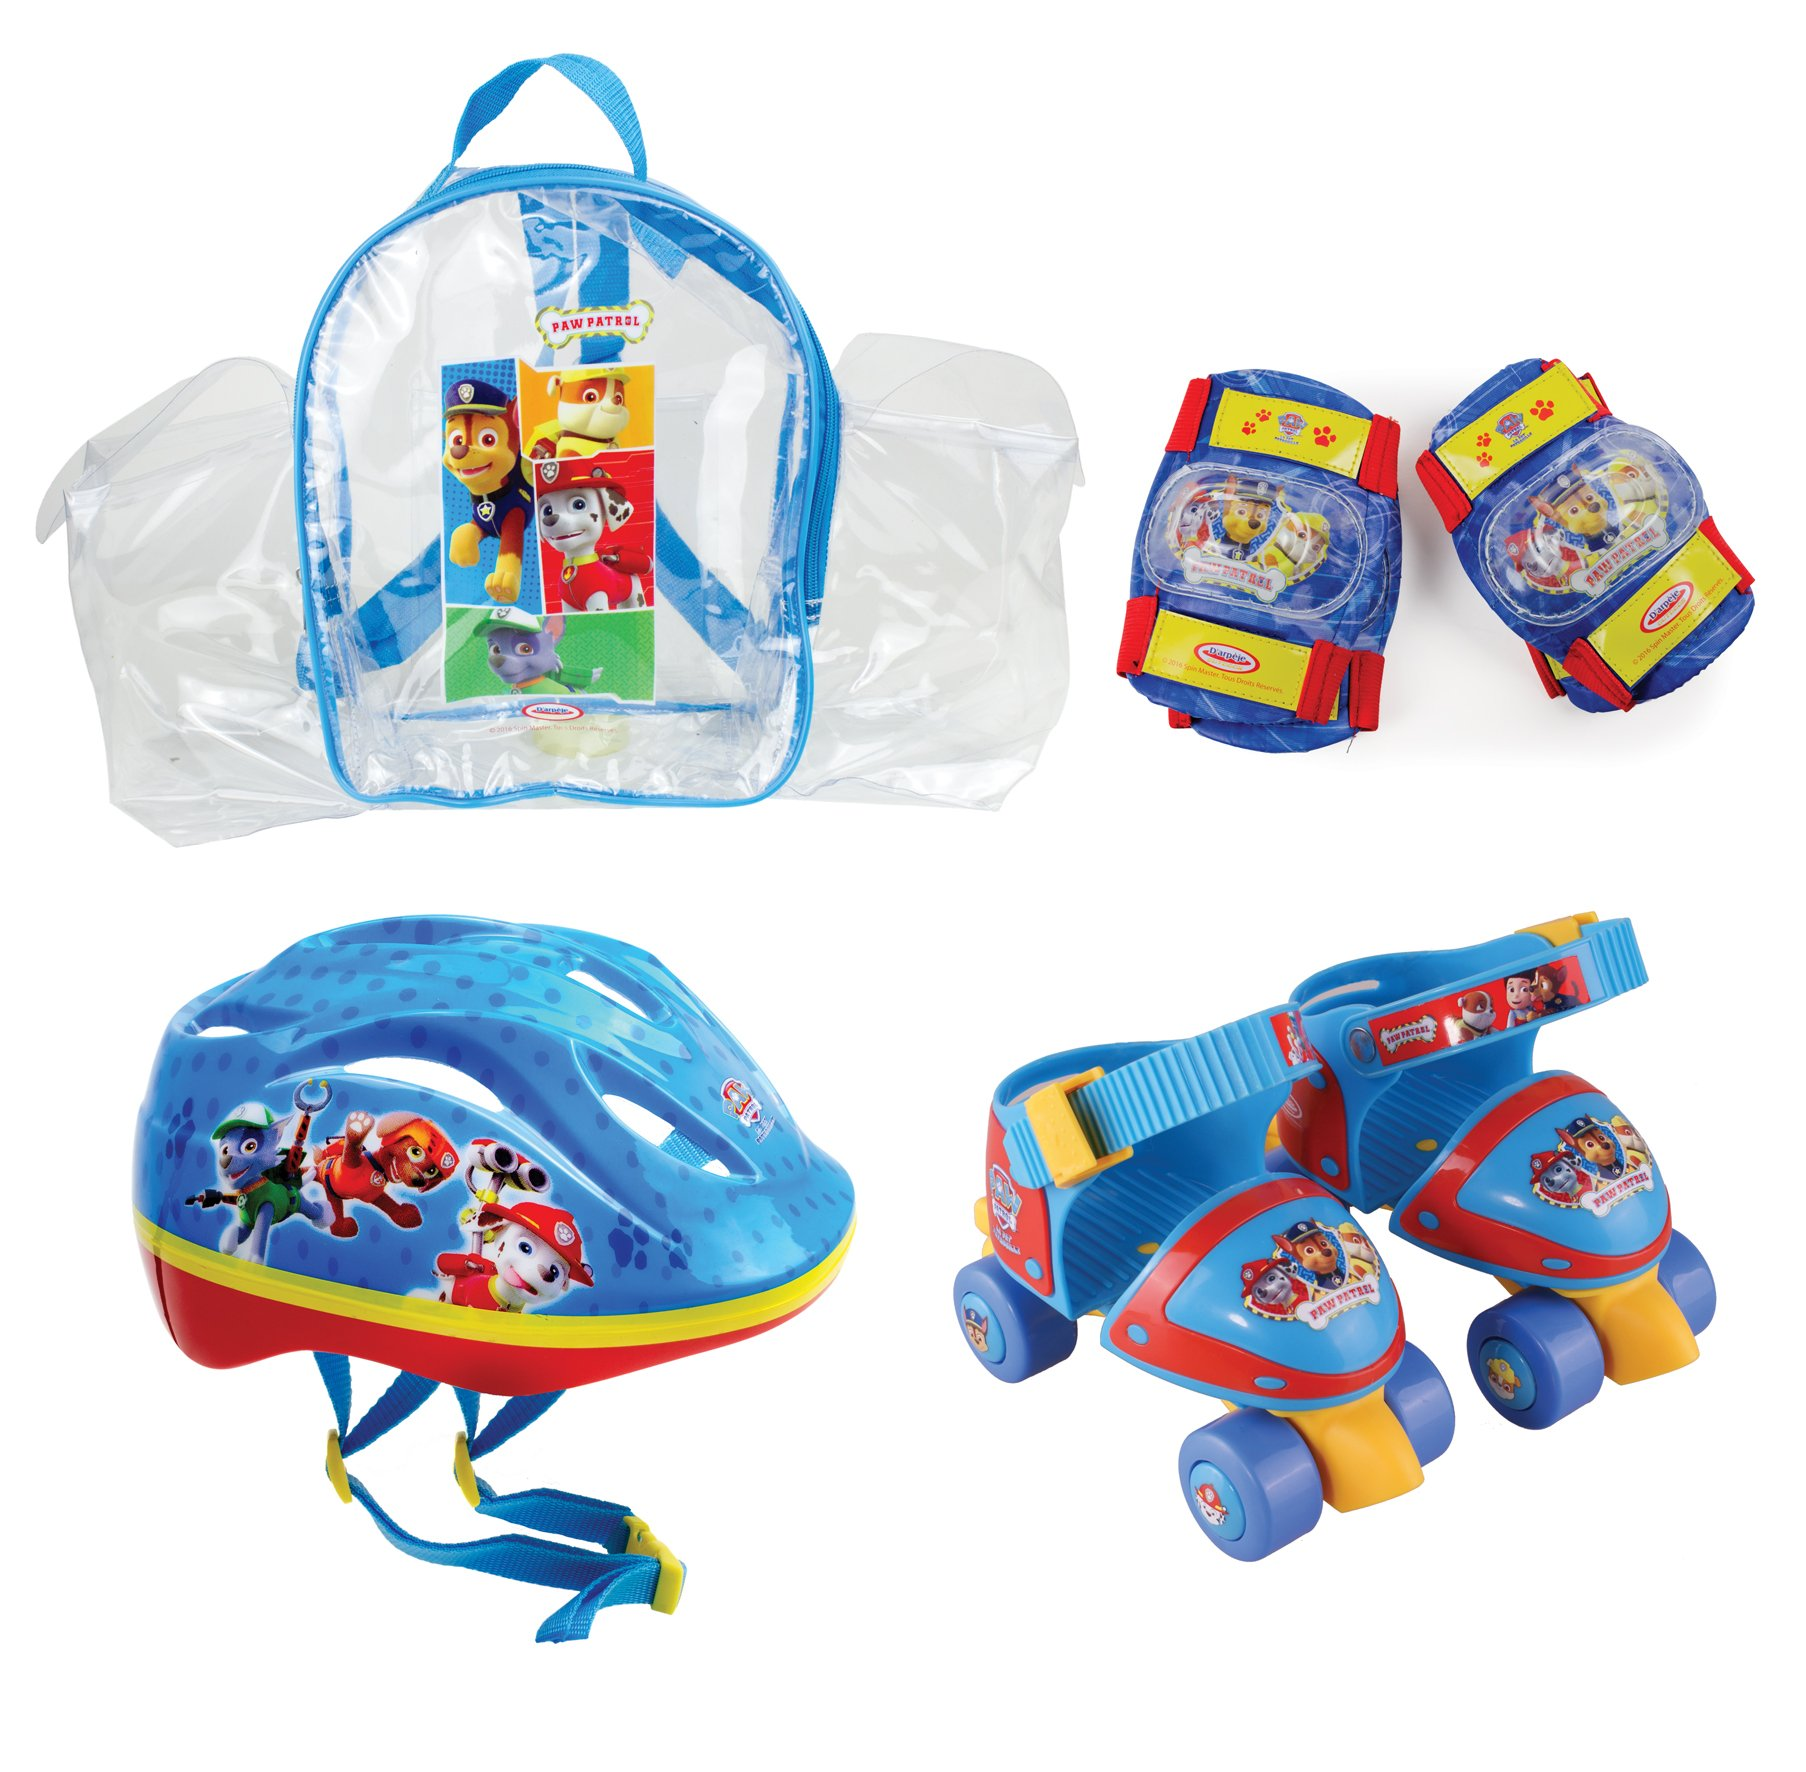 Paw Patrol DARP-OPAW002 Size 7-11 Quad Skate with Helmet, Knee, Elbow Pad and Bag Protection Pack, Multicolor